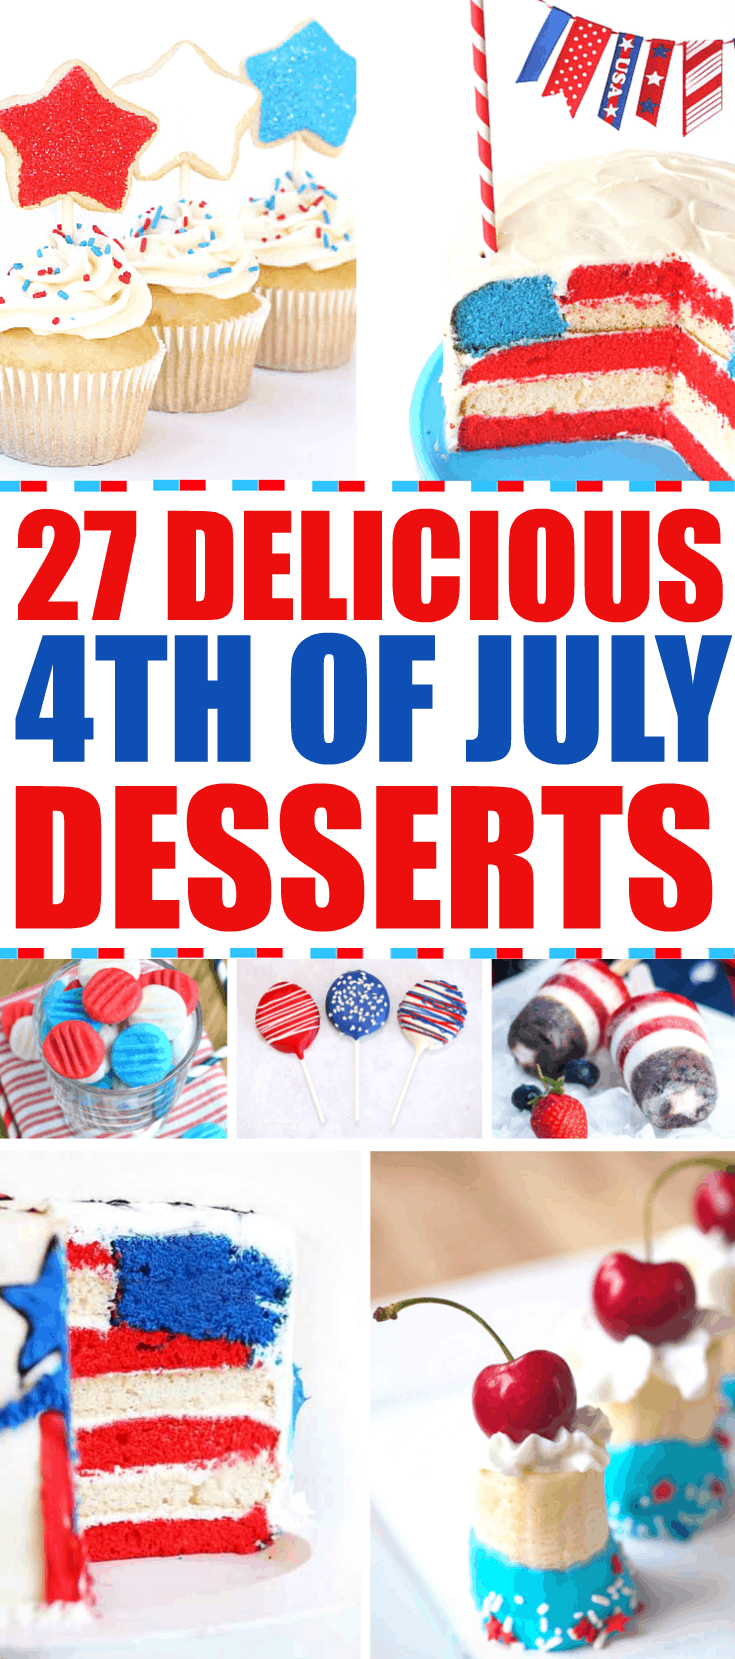 27 Delicious 4th of July Desserts at RoseBakes